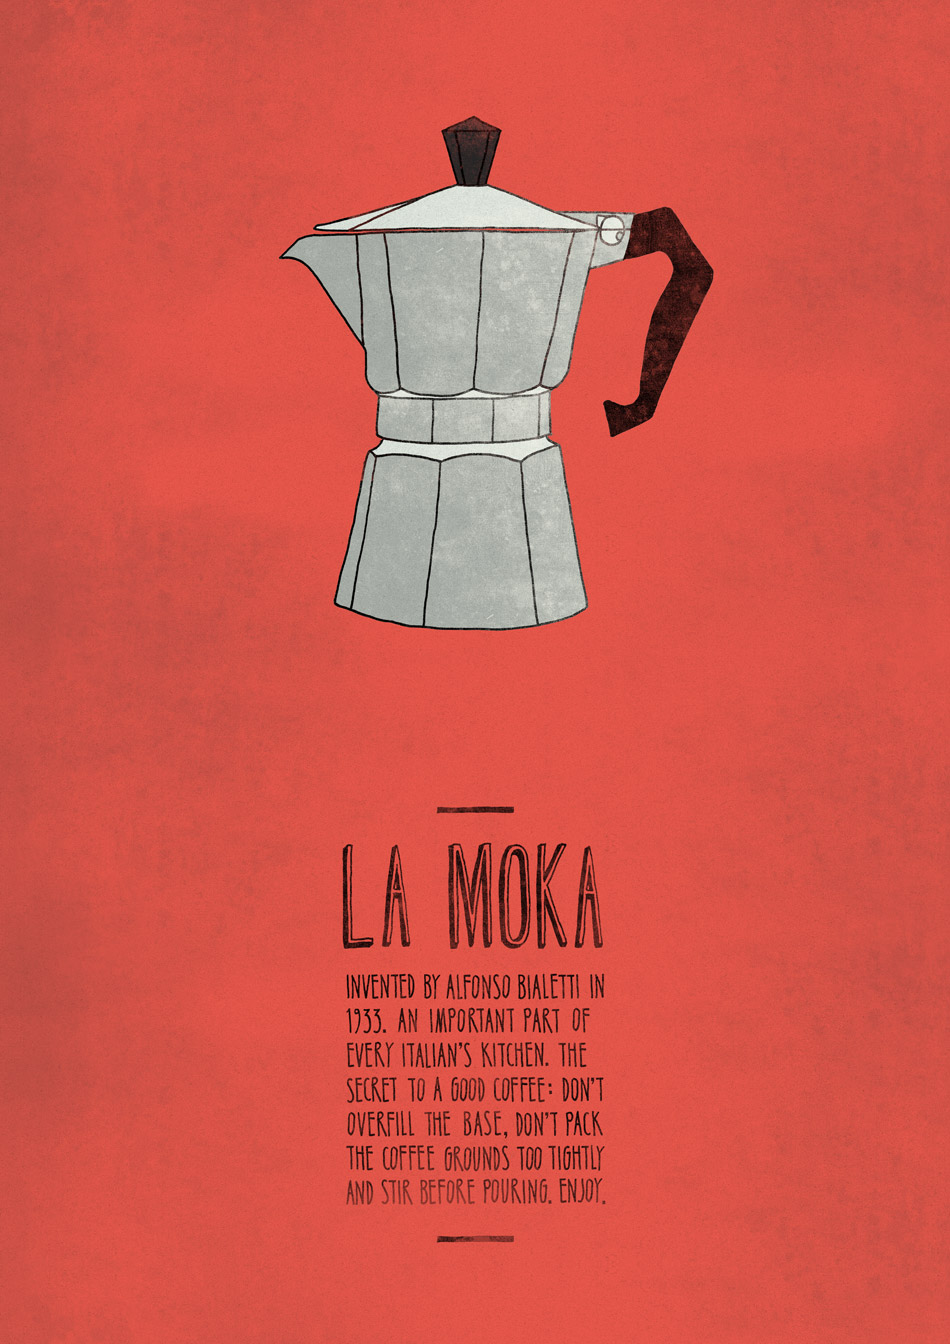 Moka_FINAL_hirestoprint_A4.jpg